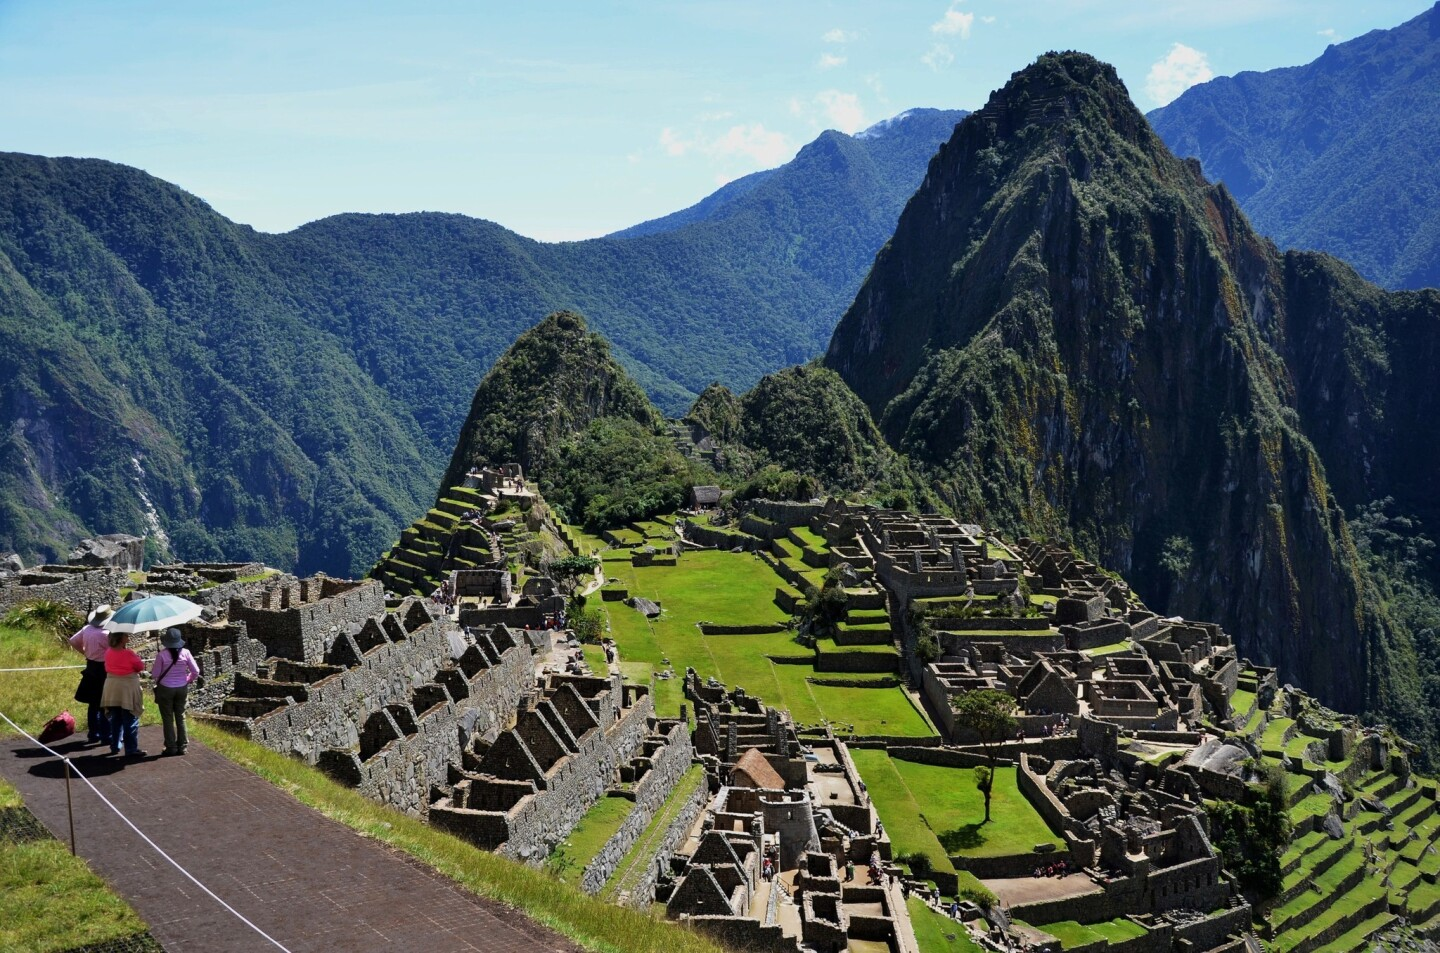 The classic Machu Picchu view from just below the site's ancient guardhouse.